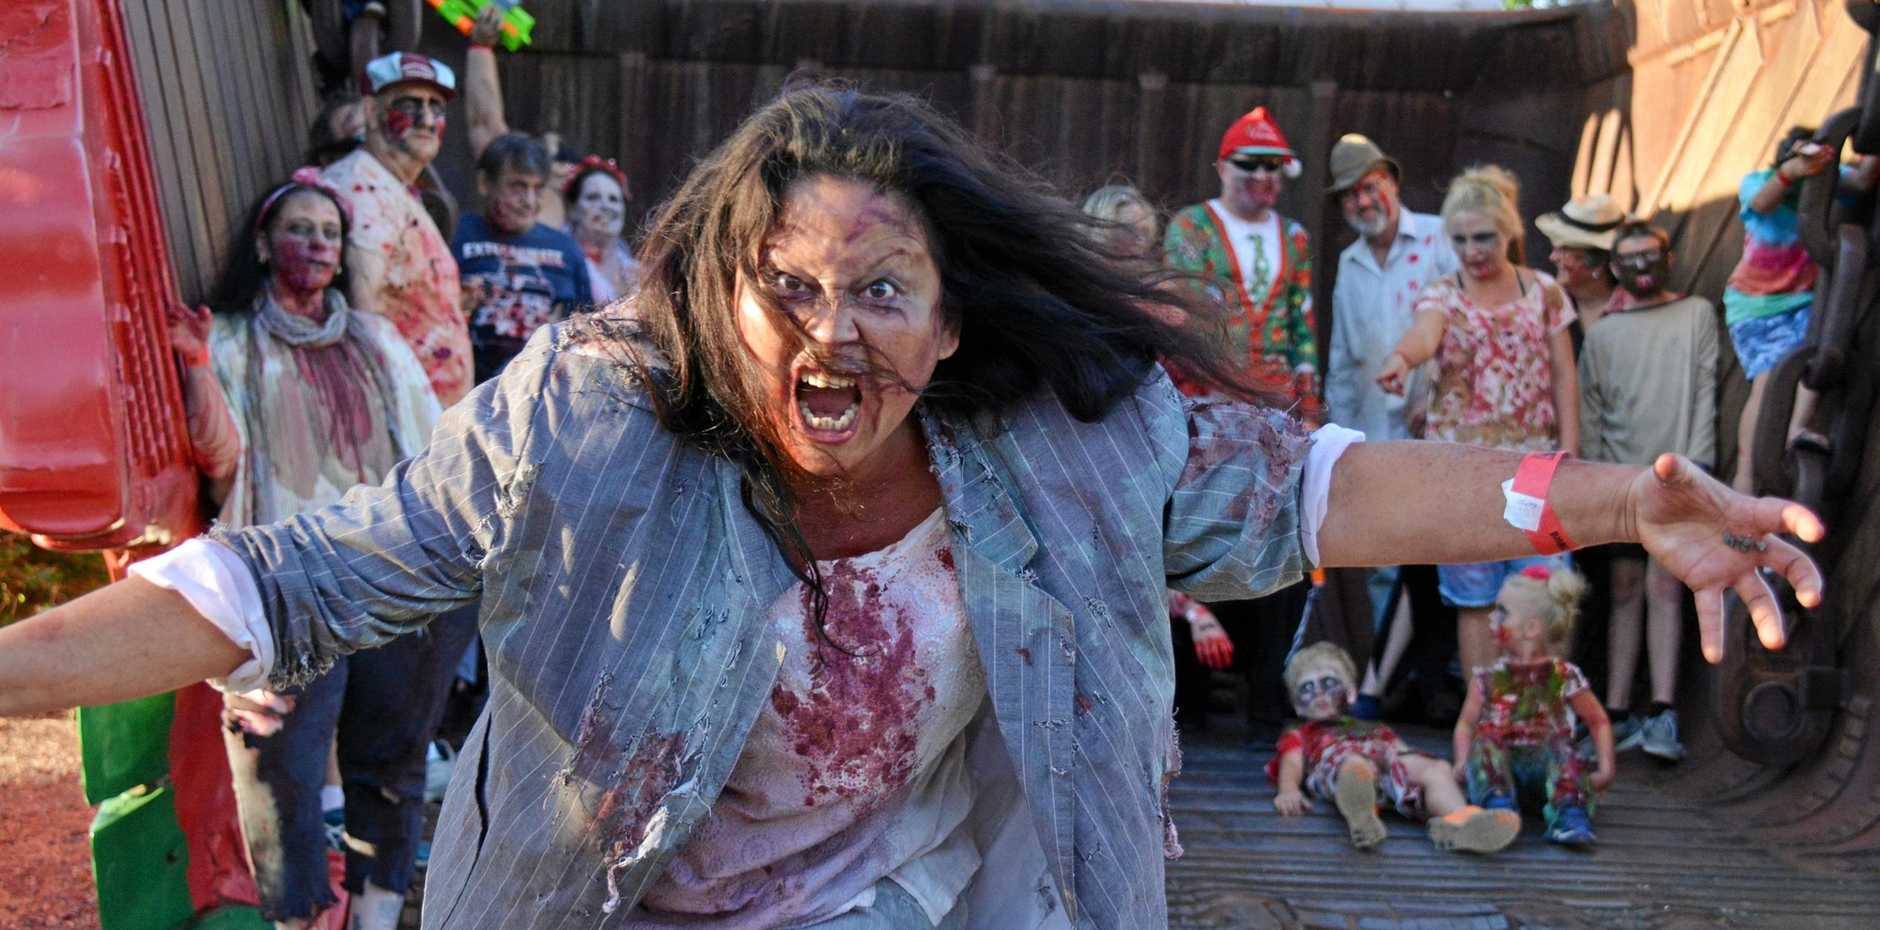 ZOMBIES: Stella Wade approaches during the Nanango Zombie Walk to Hannibal's bucket on November 24.